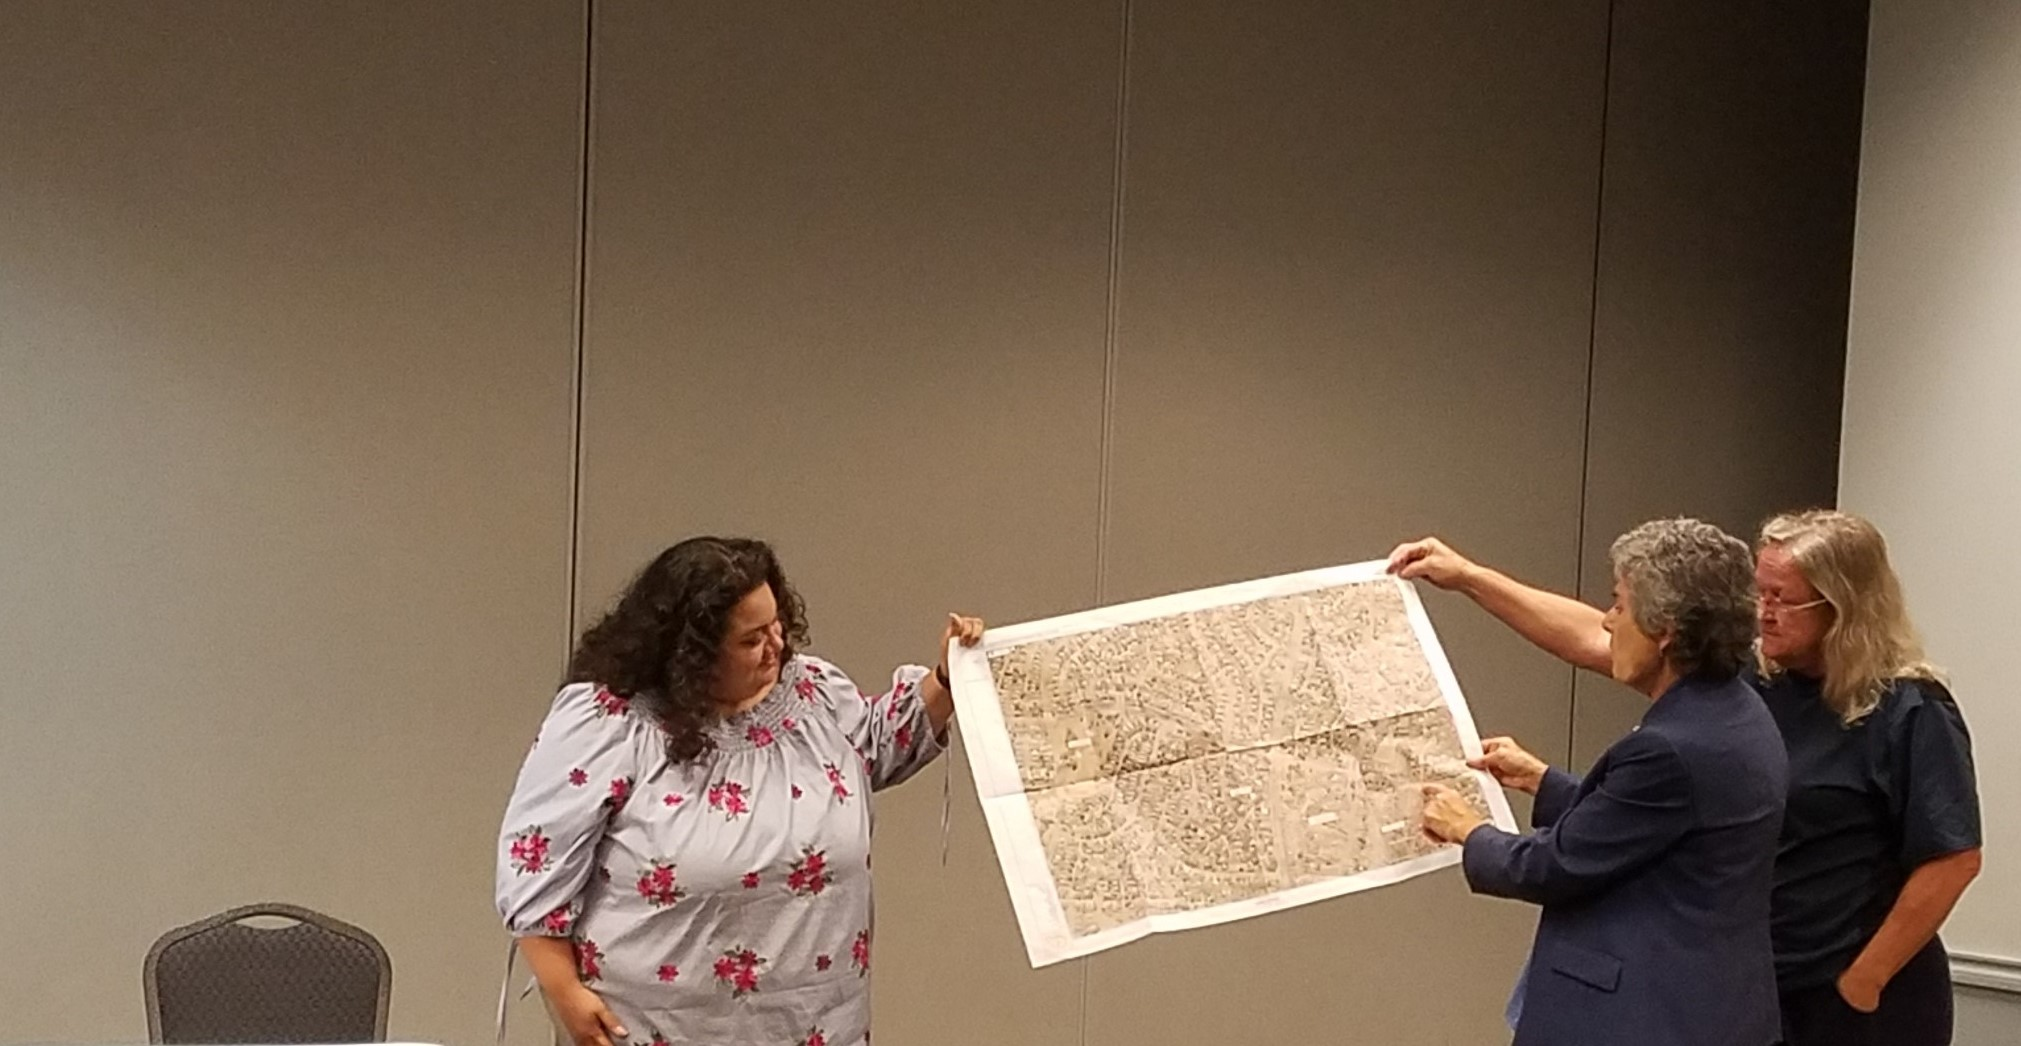 A Board member and resident help Commissioner Cook hold up an area map while she explains current and projected road projects.